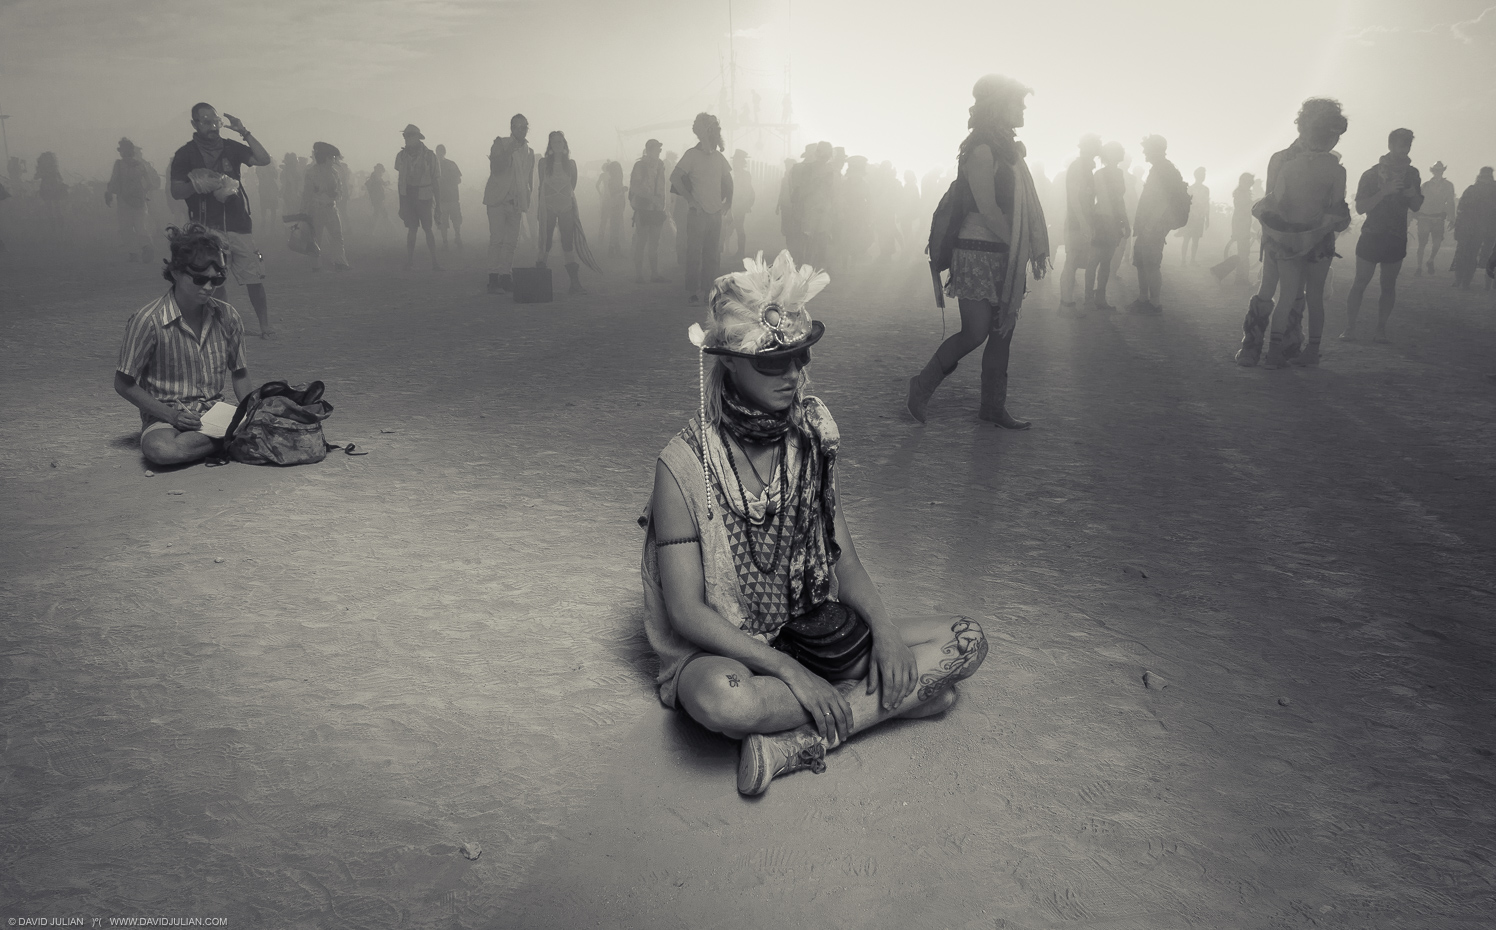 28Burning Man 2015 meditaing-1561-APF